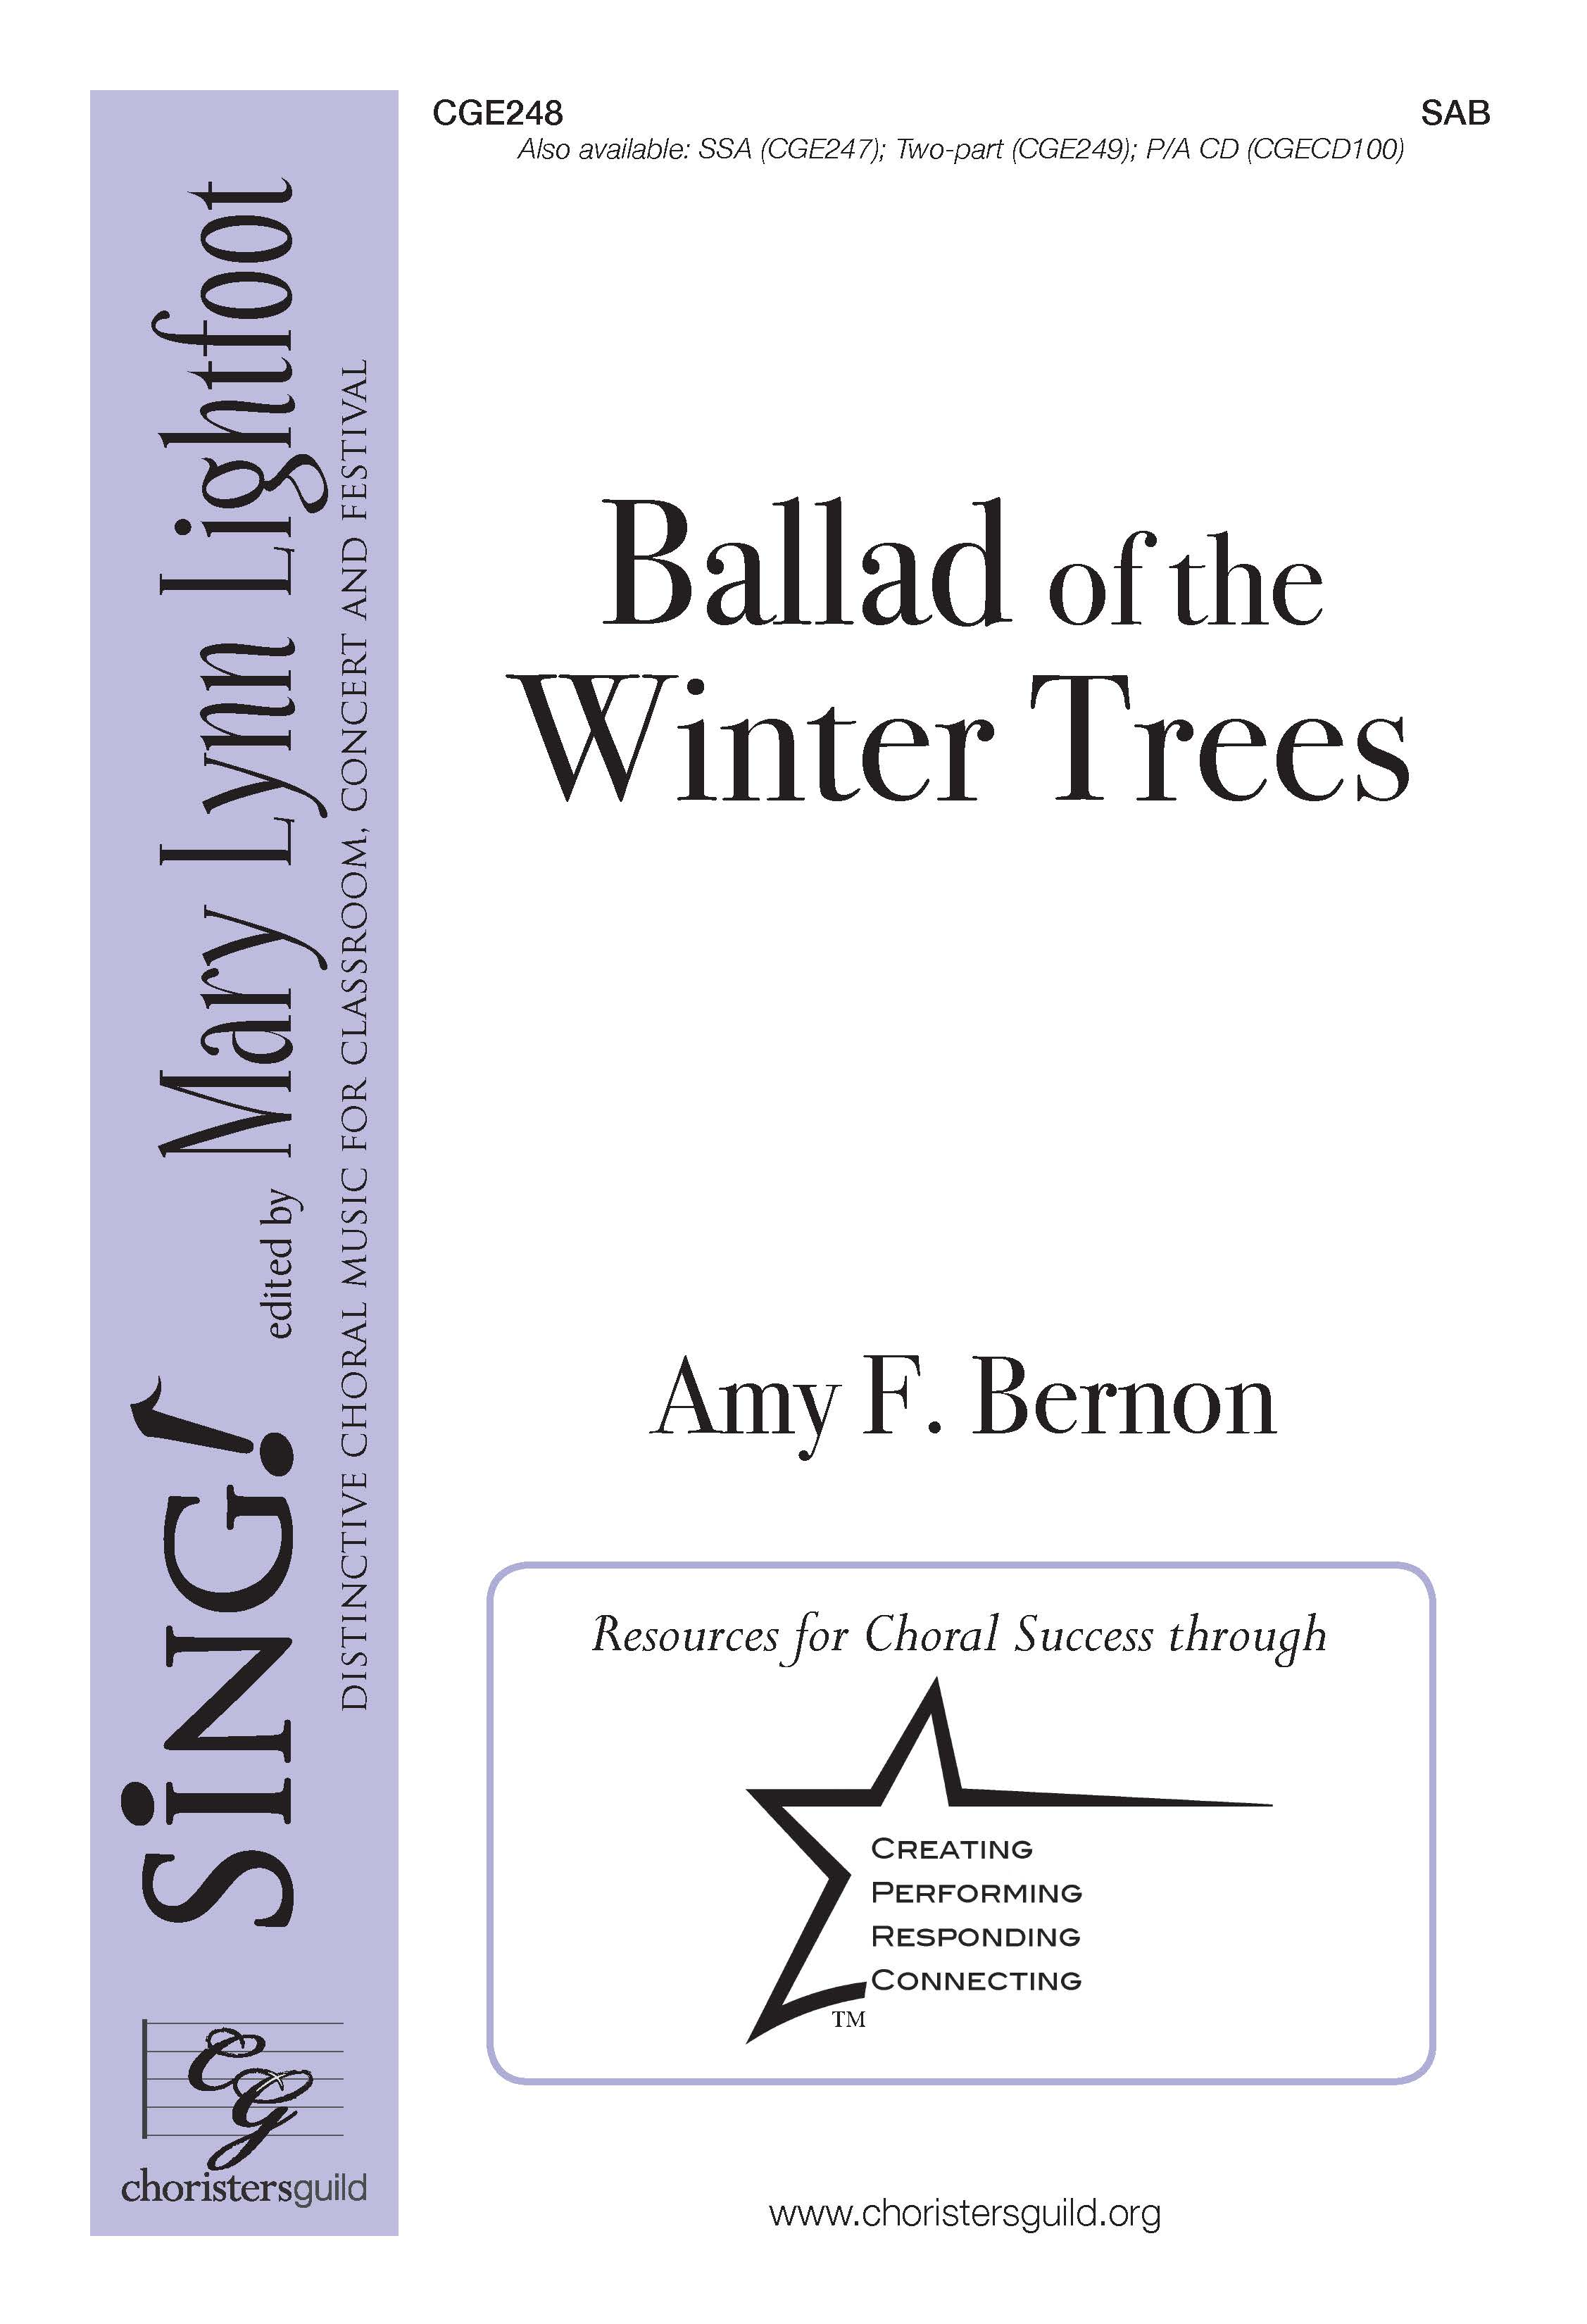 Ballad of the Winter Trees SAB